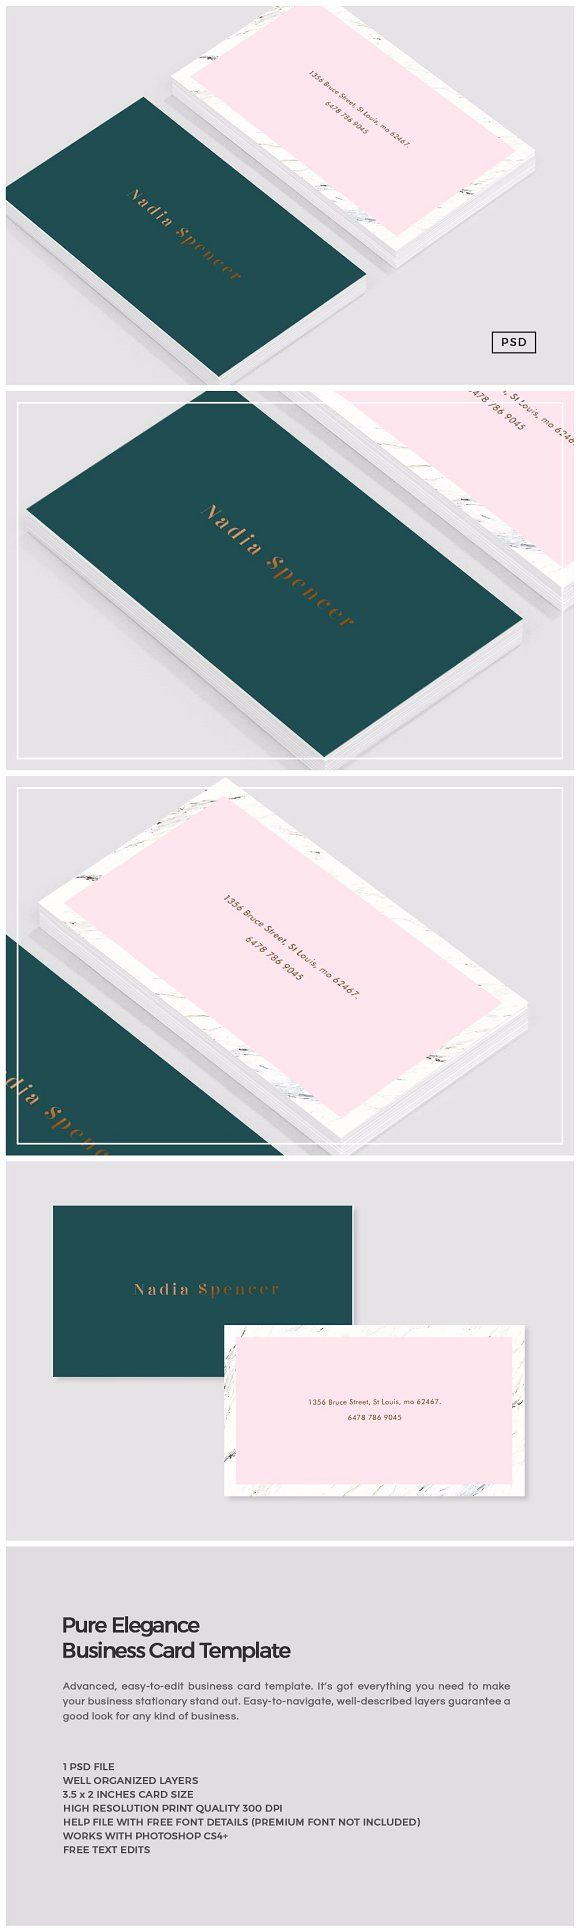 886 best Business Card Template images on Pinterest | Business card ...